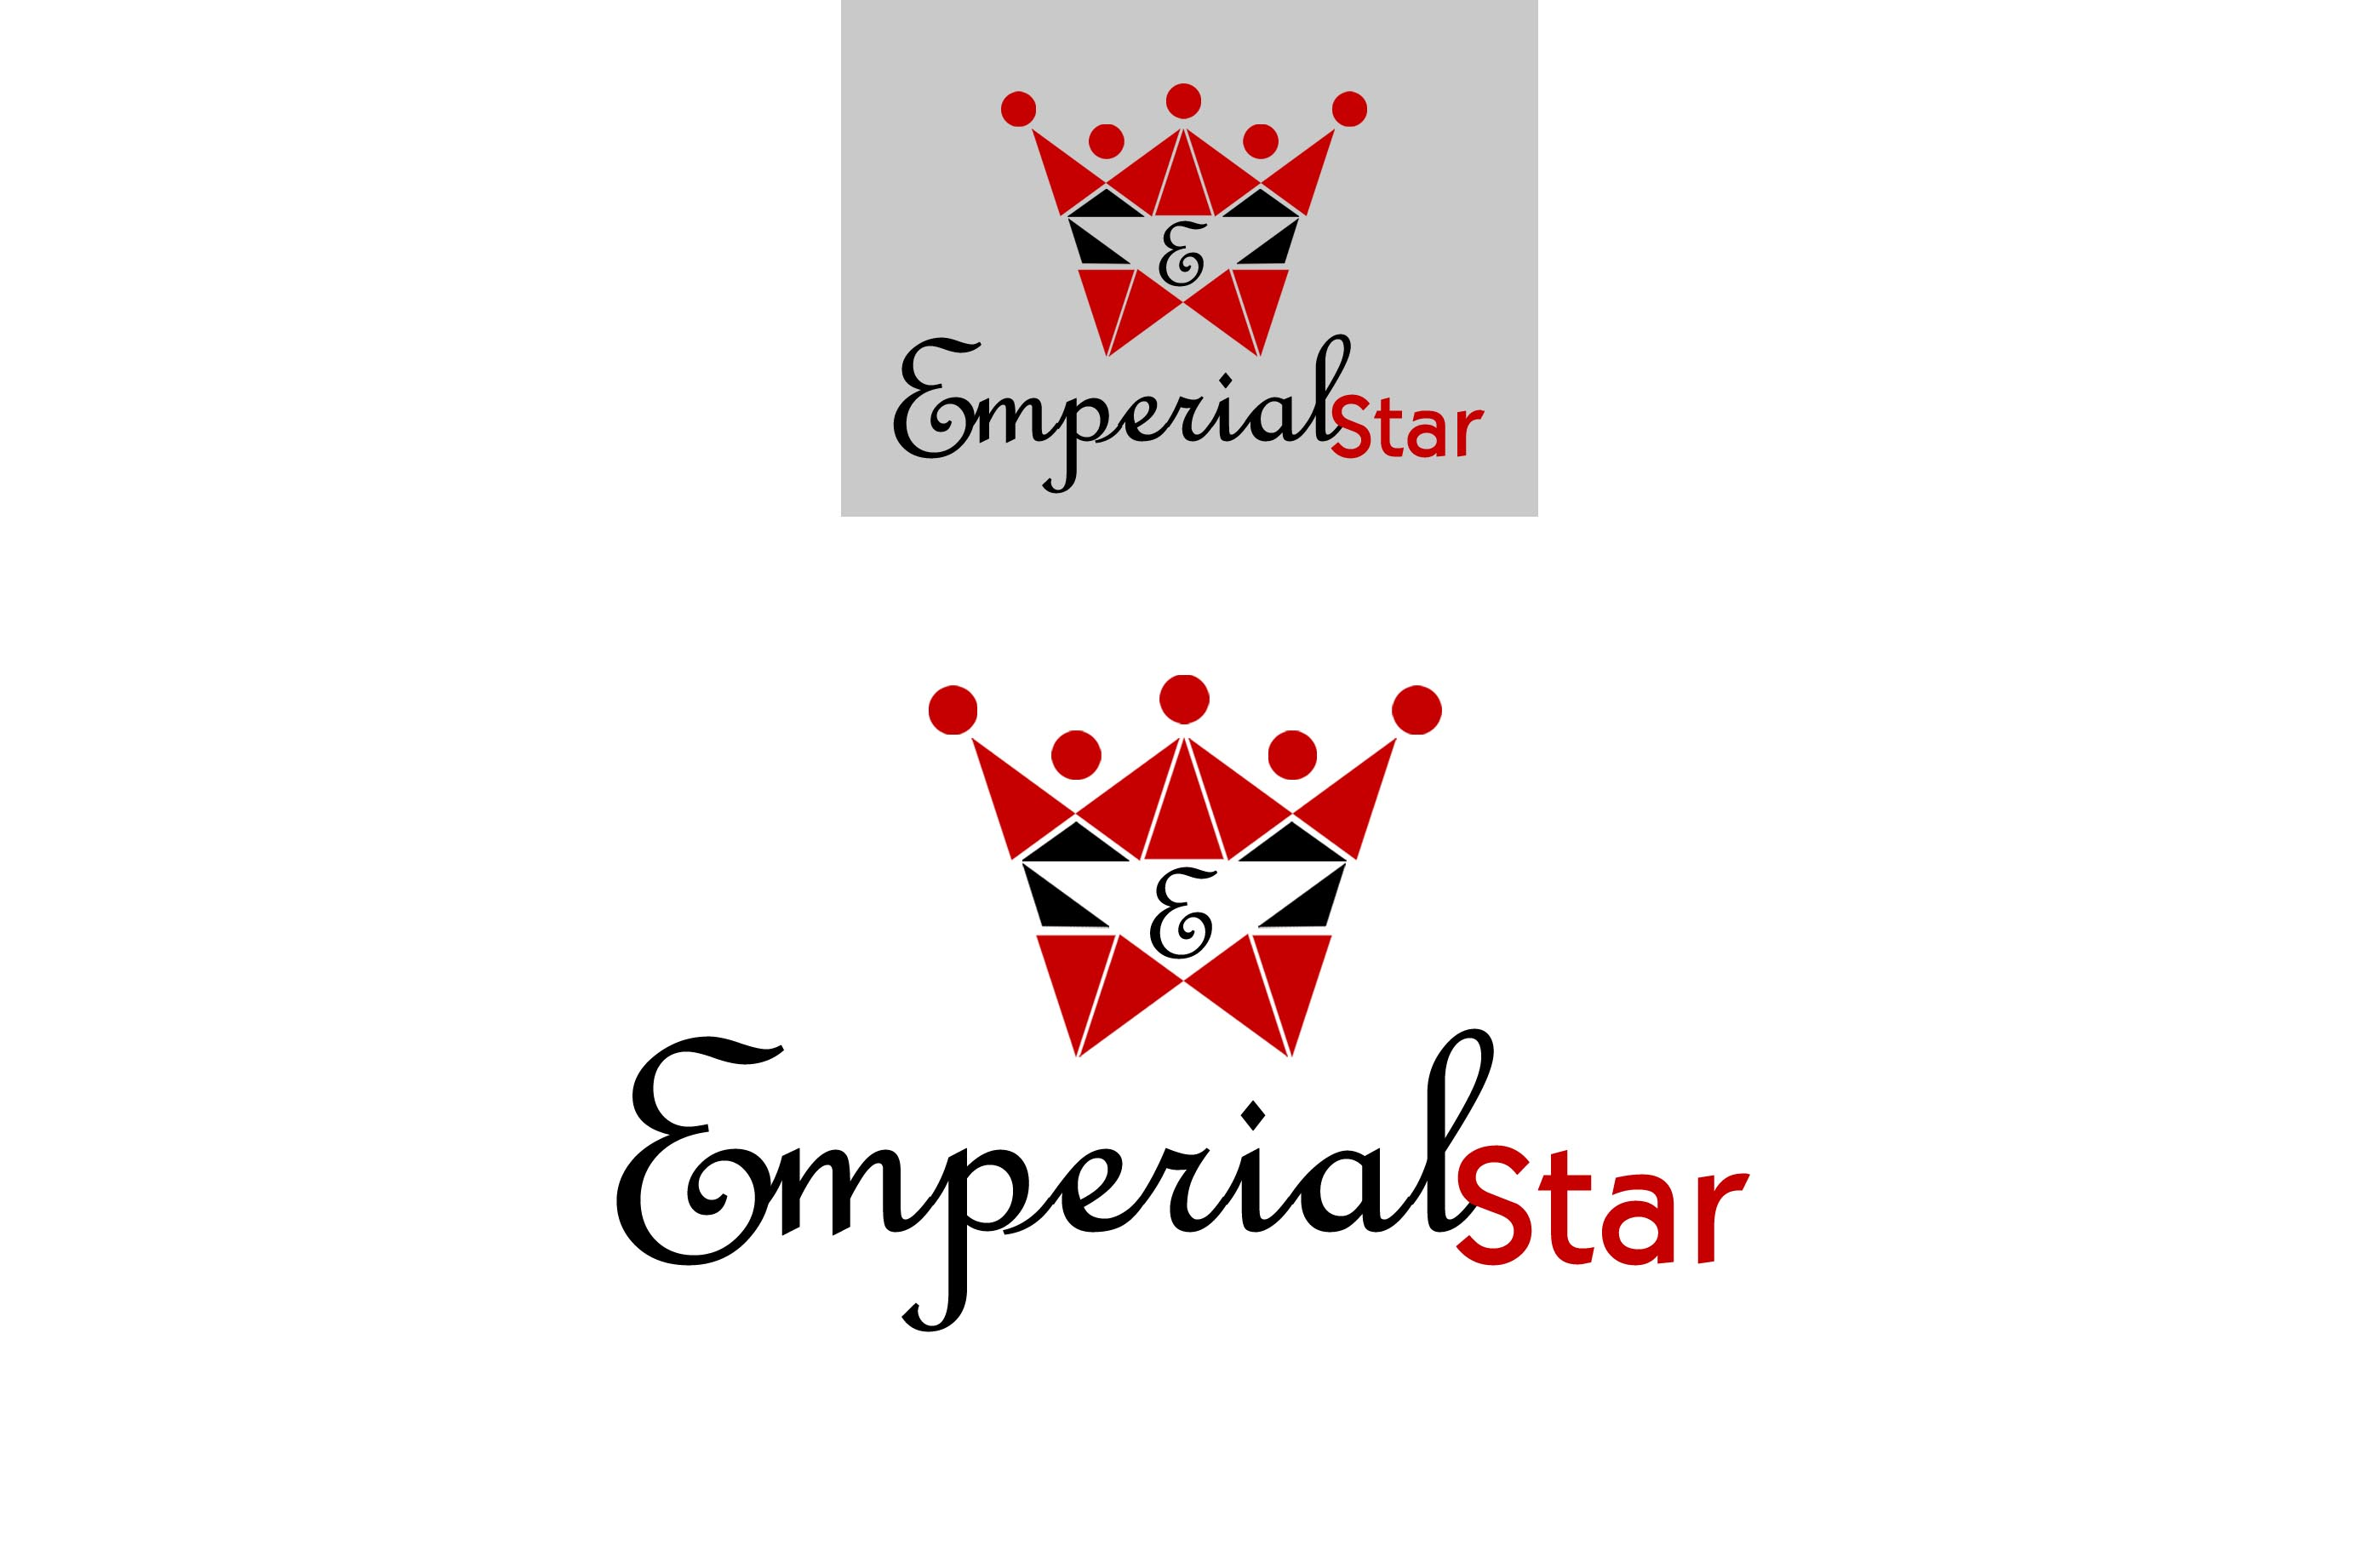 Logo Design by Cesar III Sotto - Entry No. 73 in the Logo Design Contest Emperial Star Logo Design.